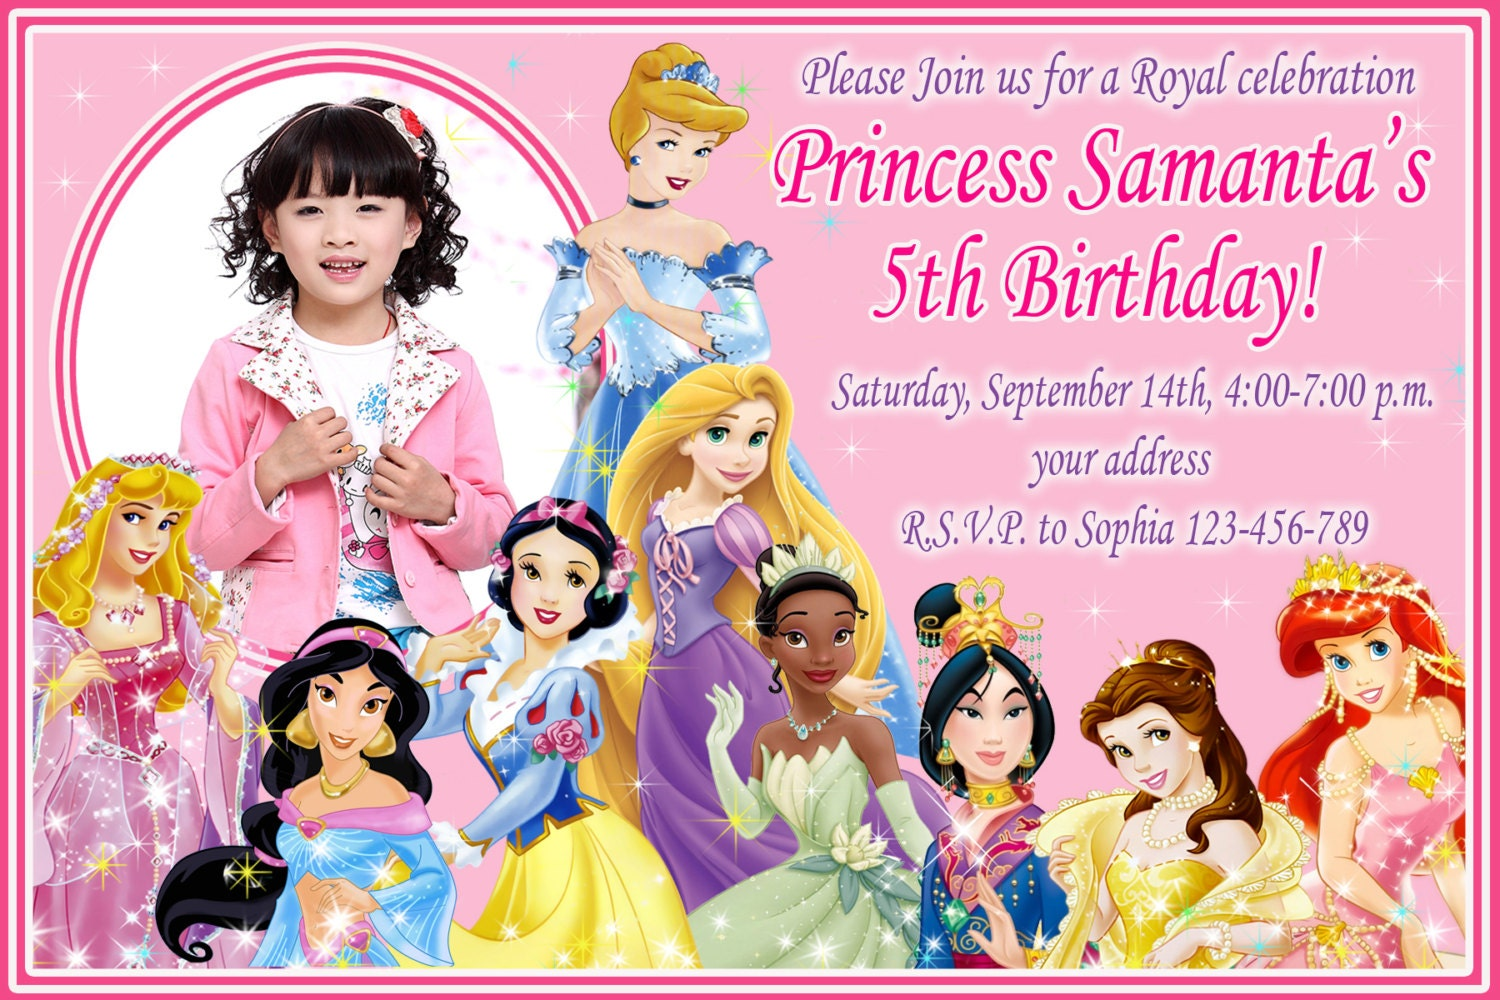 sale disney princess birthday invitation disney princess, Birthday invitations